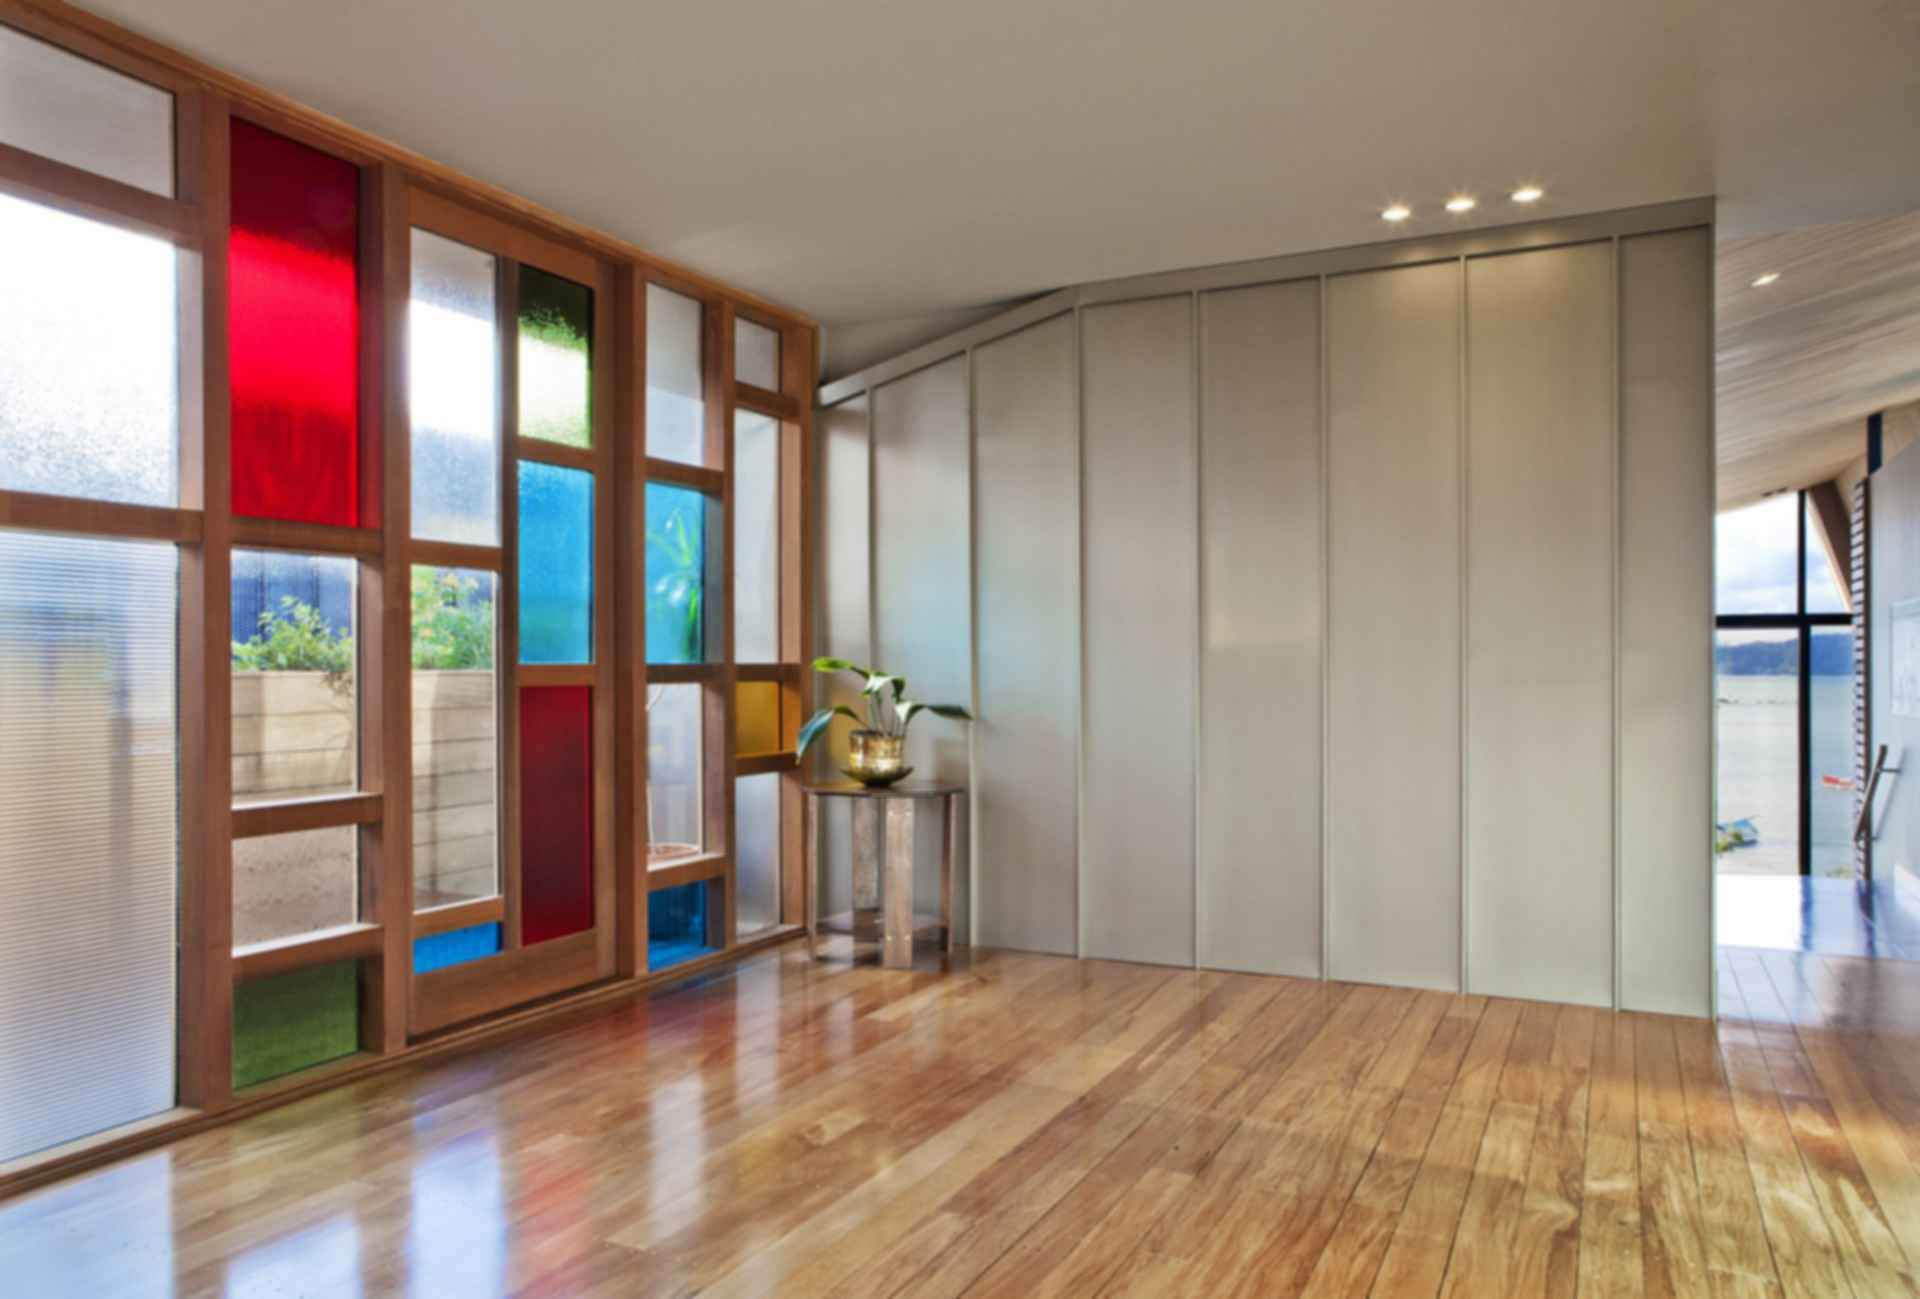 Winsomere Crescent Residence - Interior